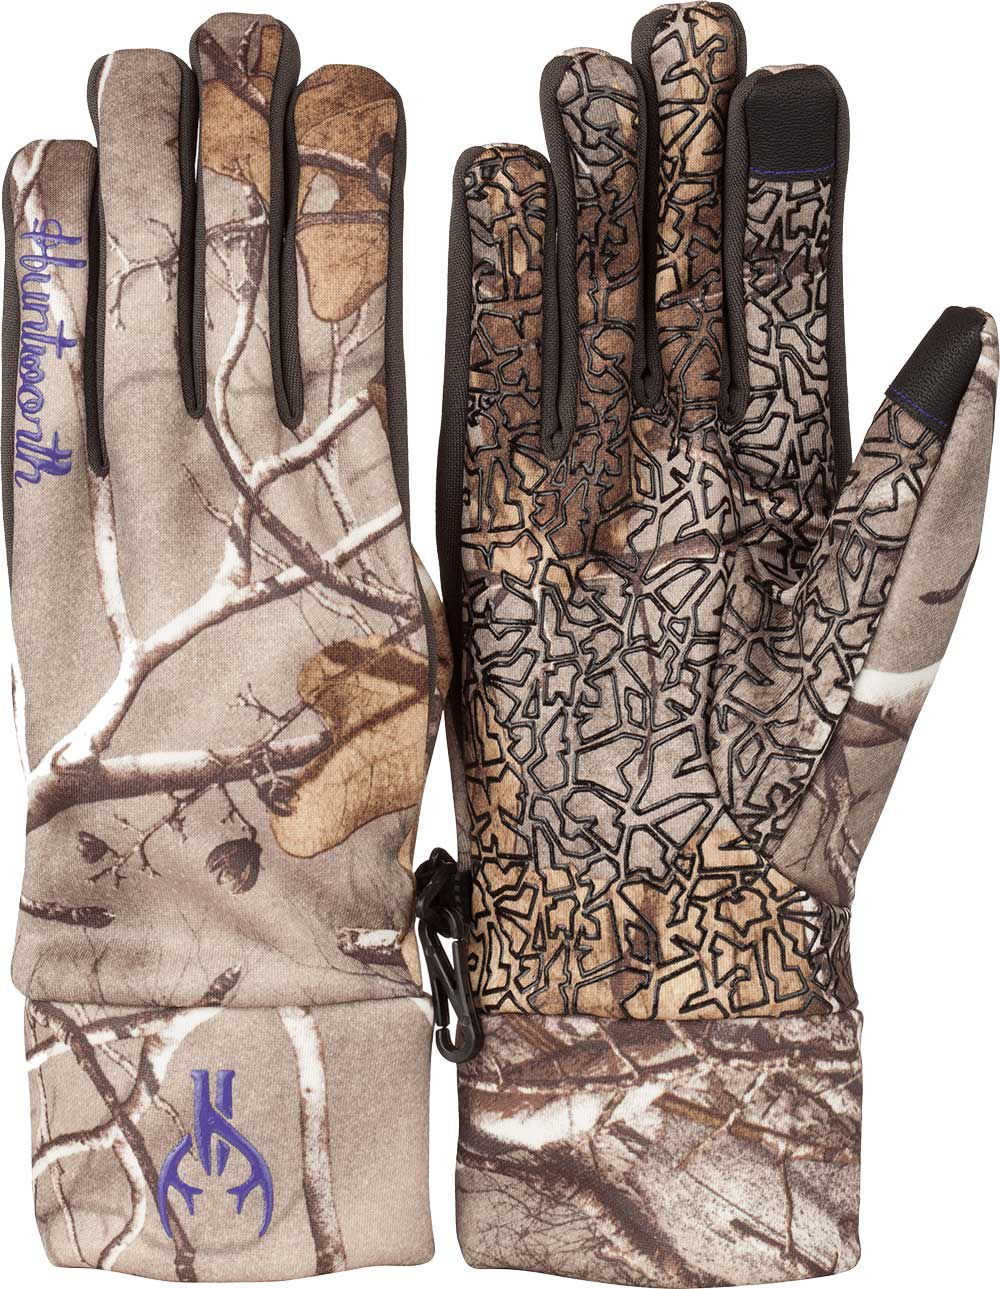 Huntworth Women's Stealth Hunting Glove, Brown thumbnail